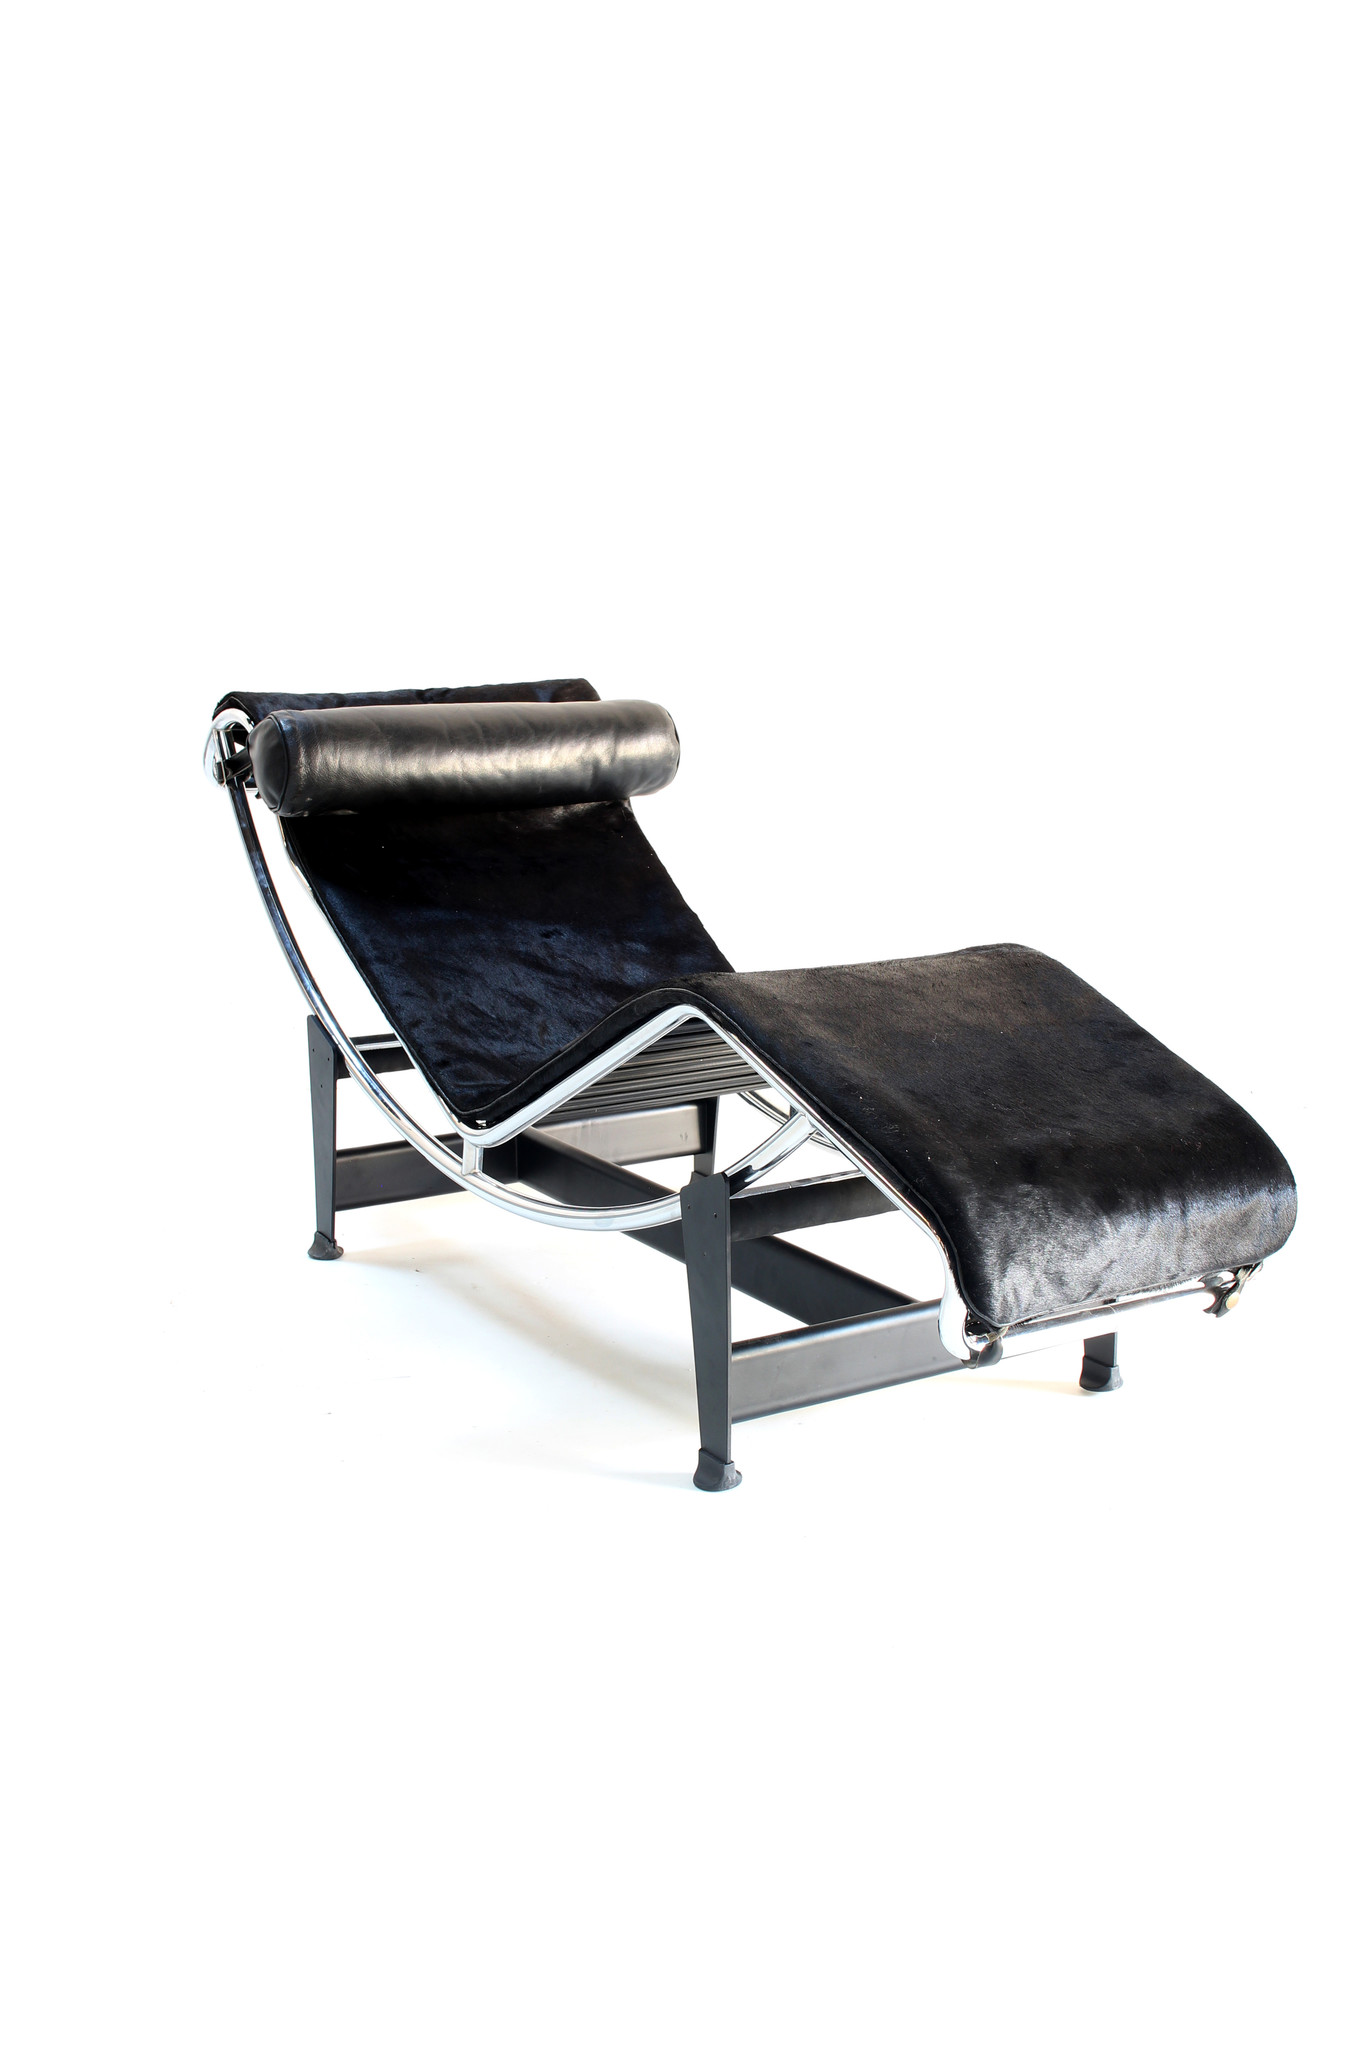 Le Corbusier LC4 Chaise Longue early edition